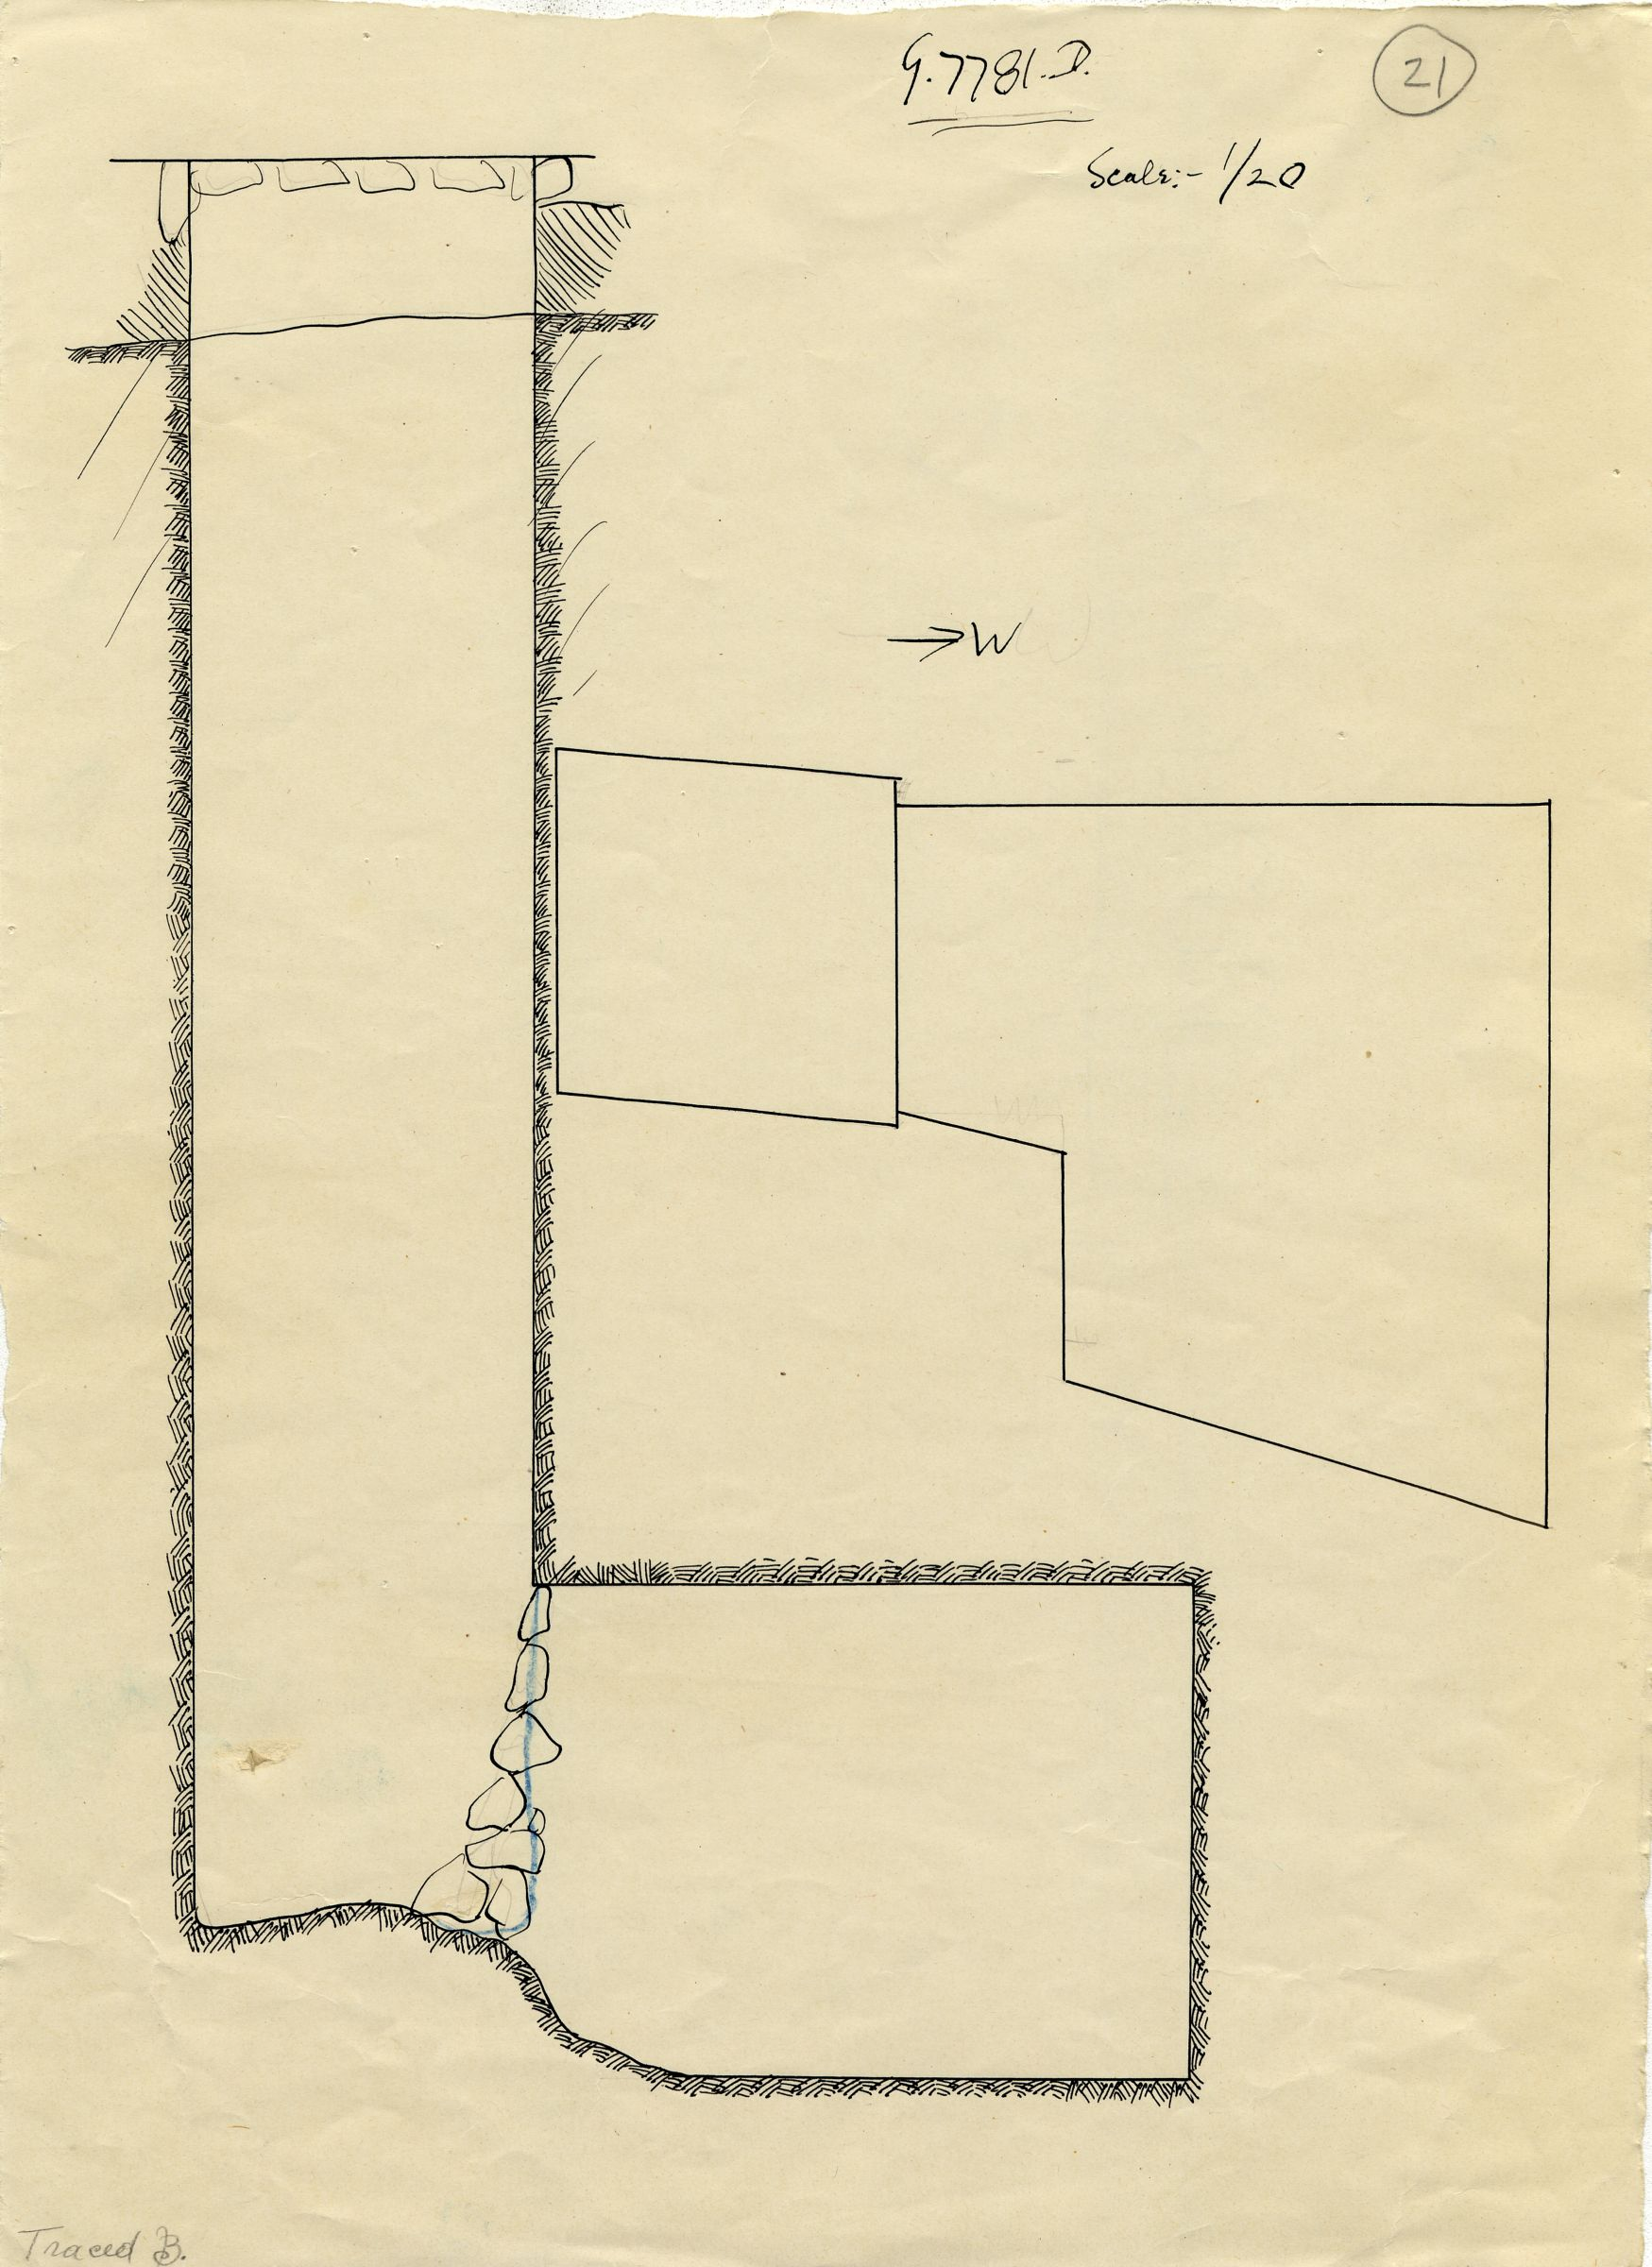 Maps and plans: G 7781, Shaft D